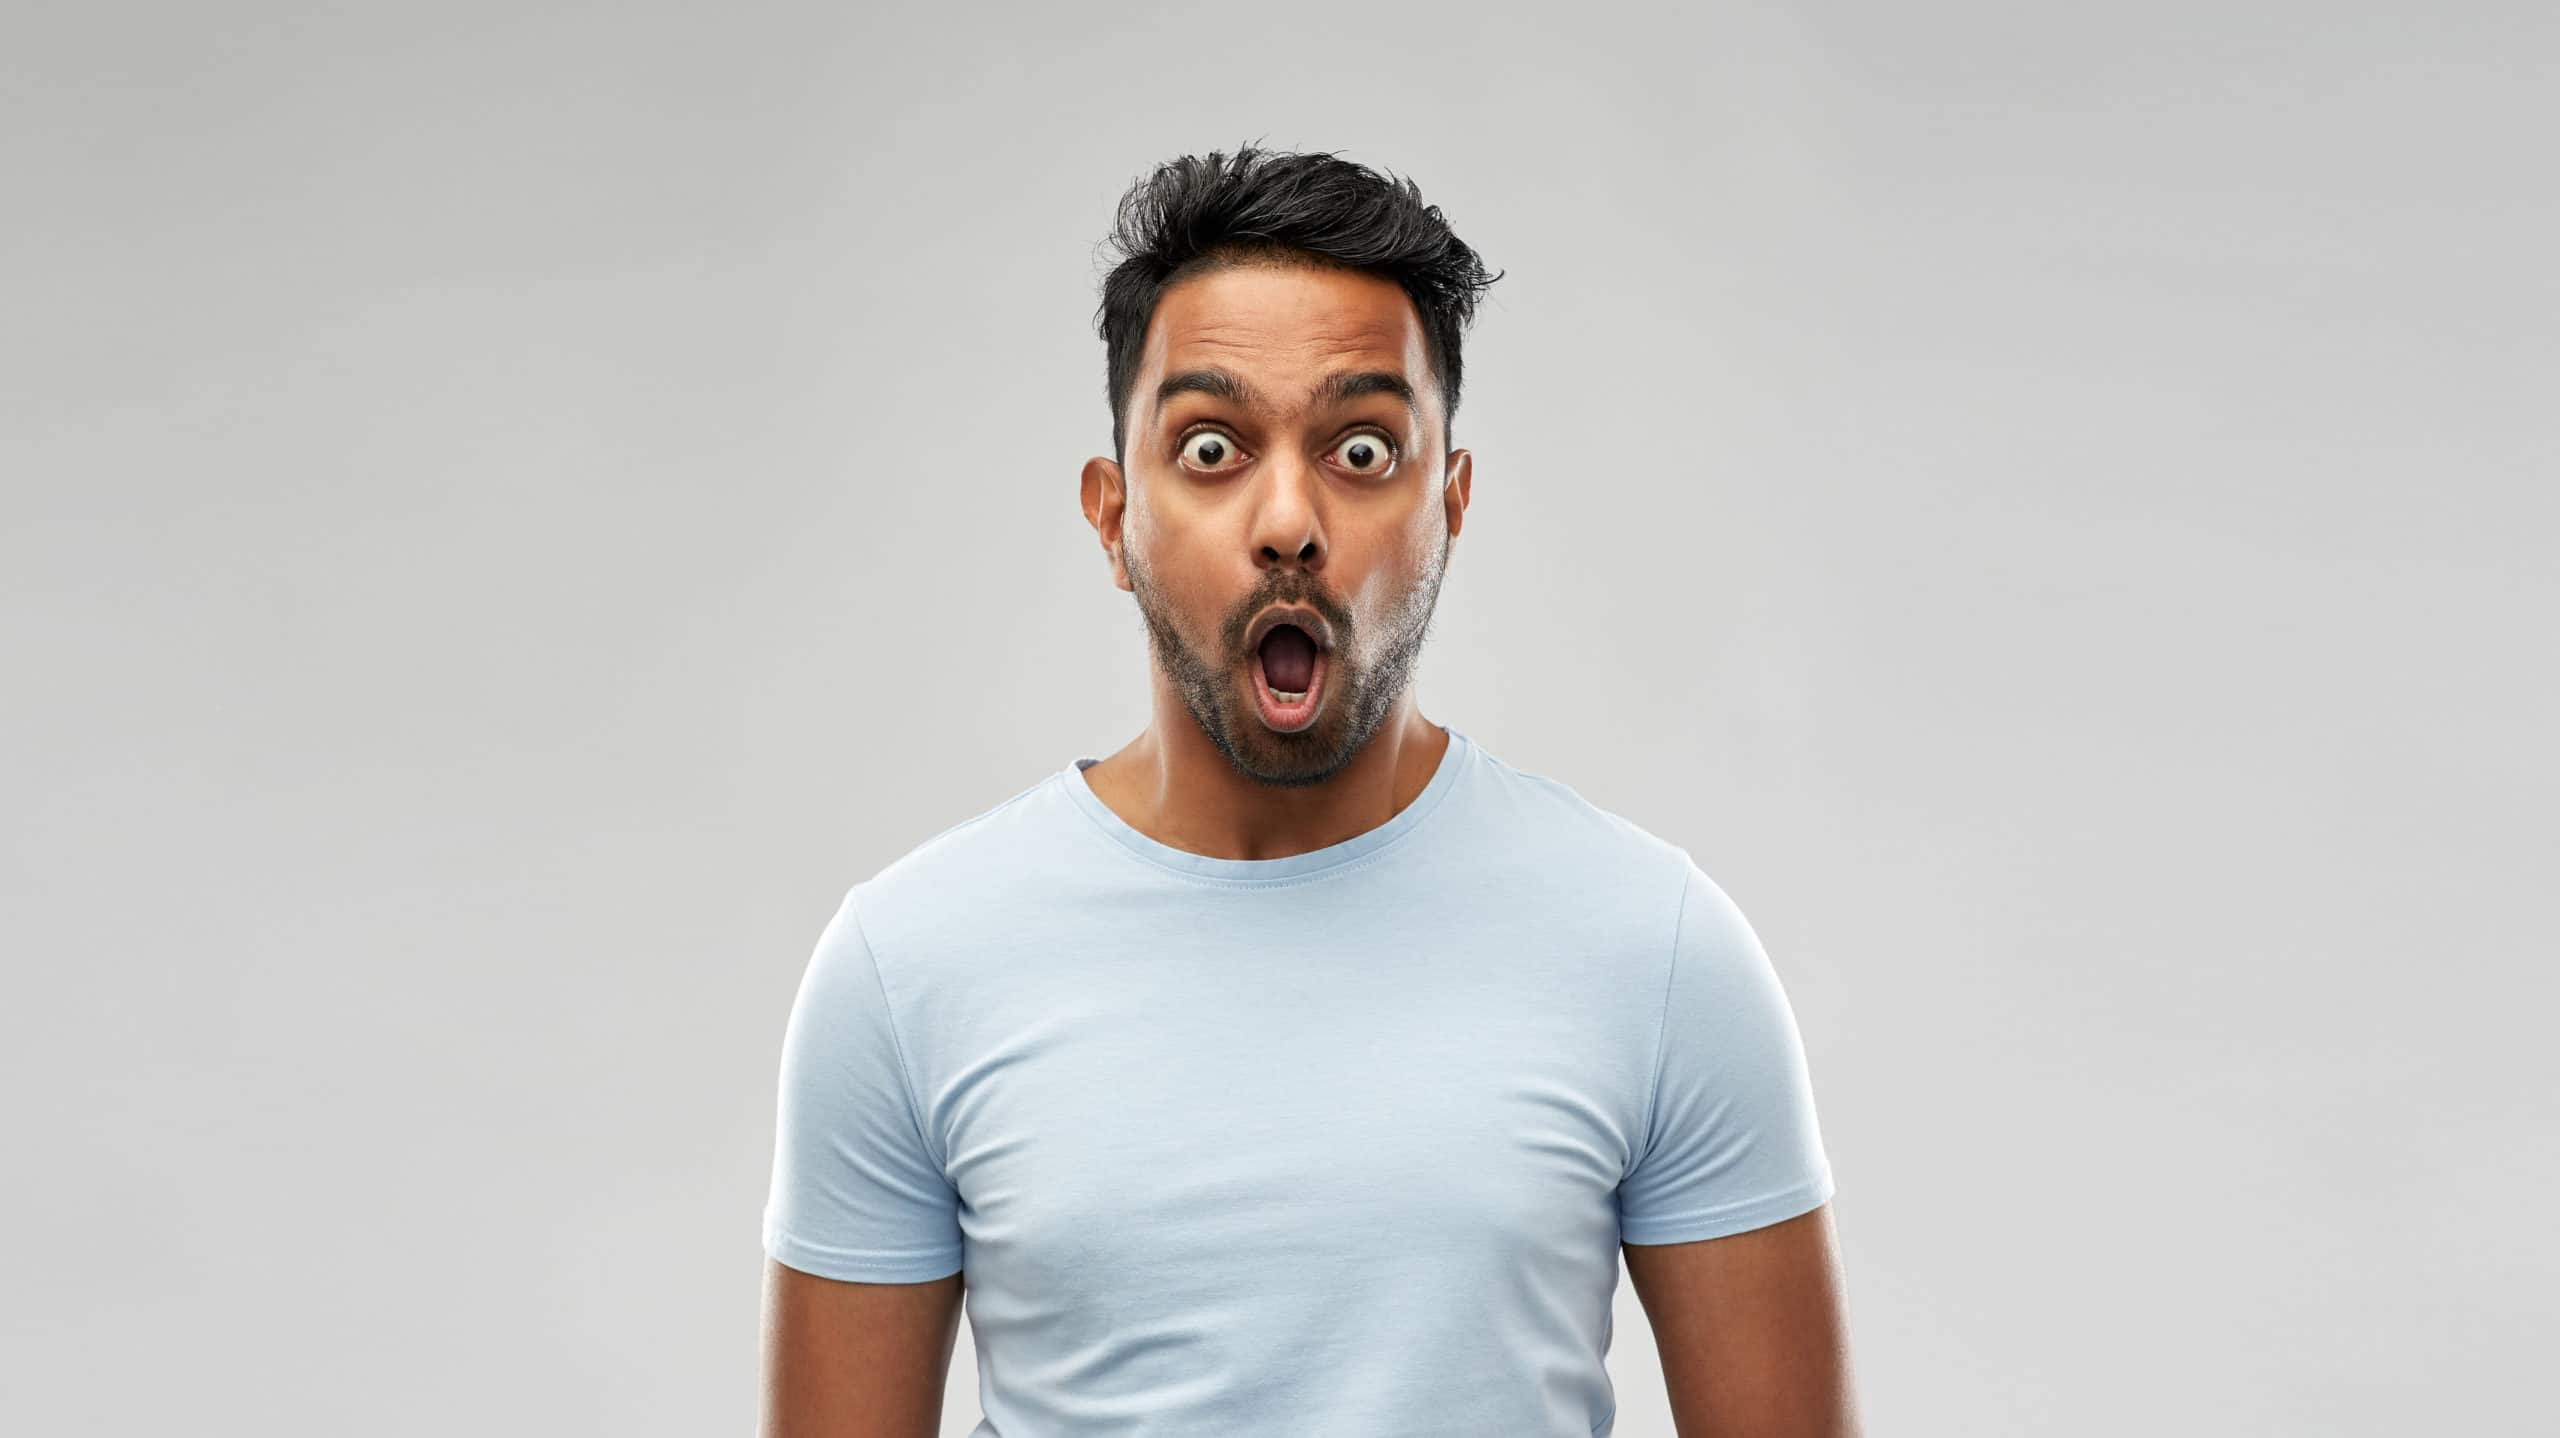 Man stares with a shocked look and open mouth.